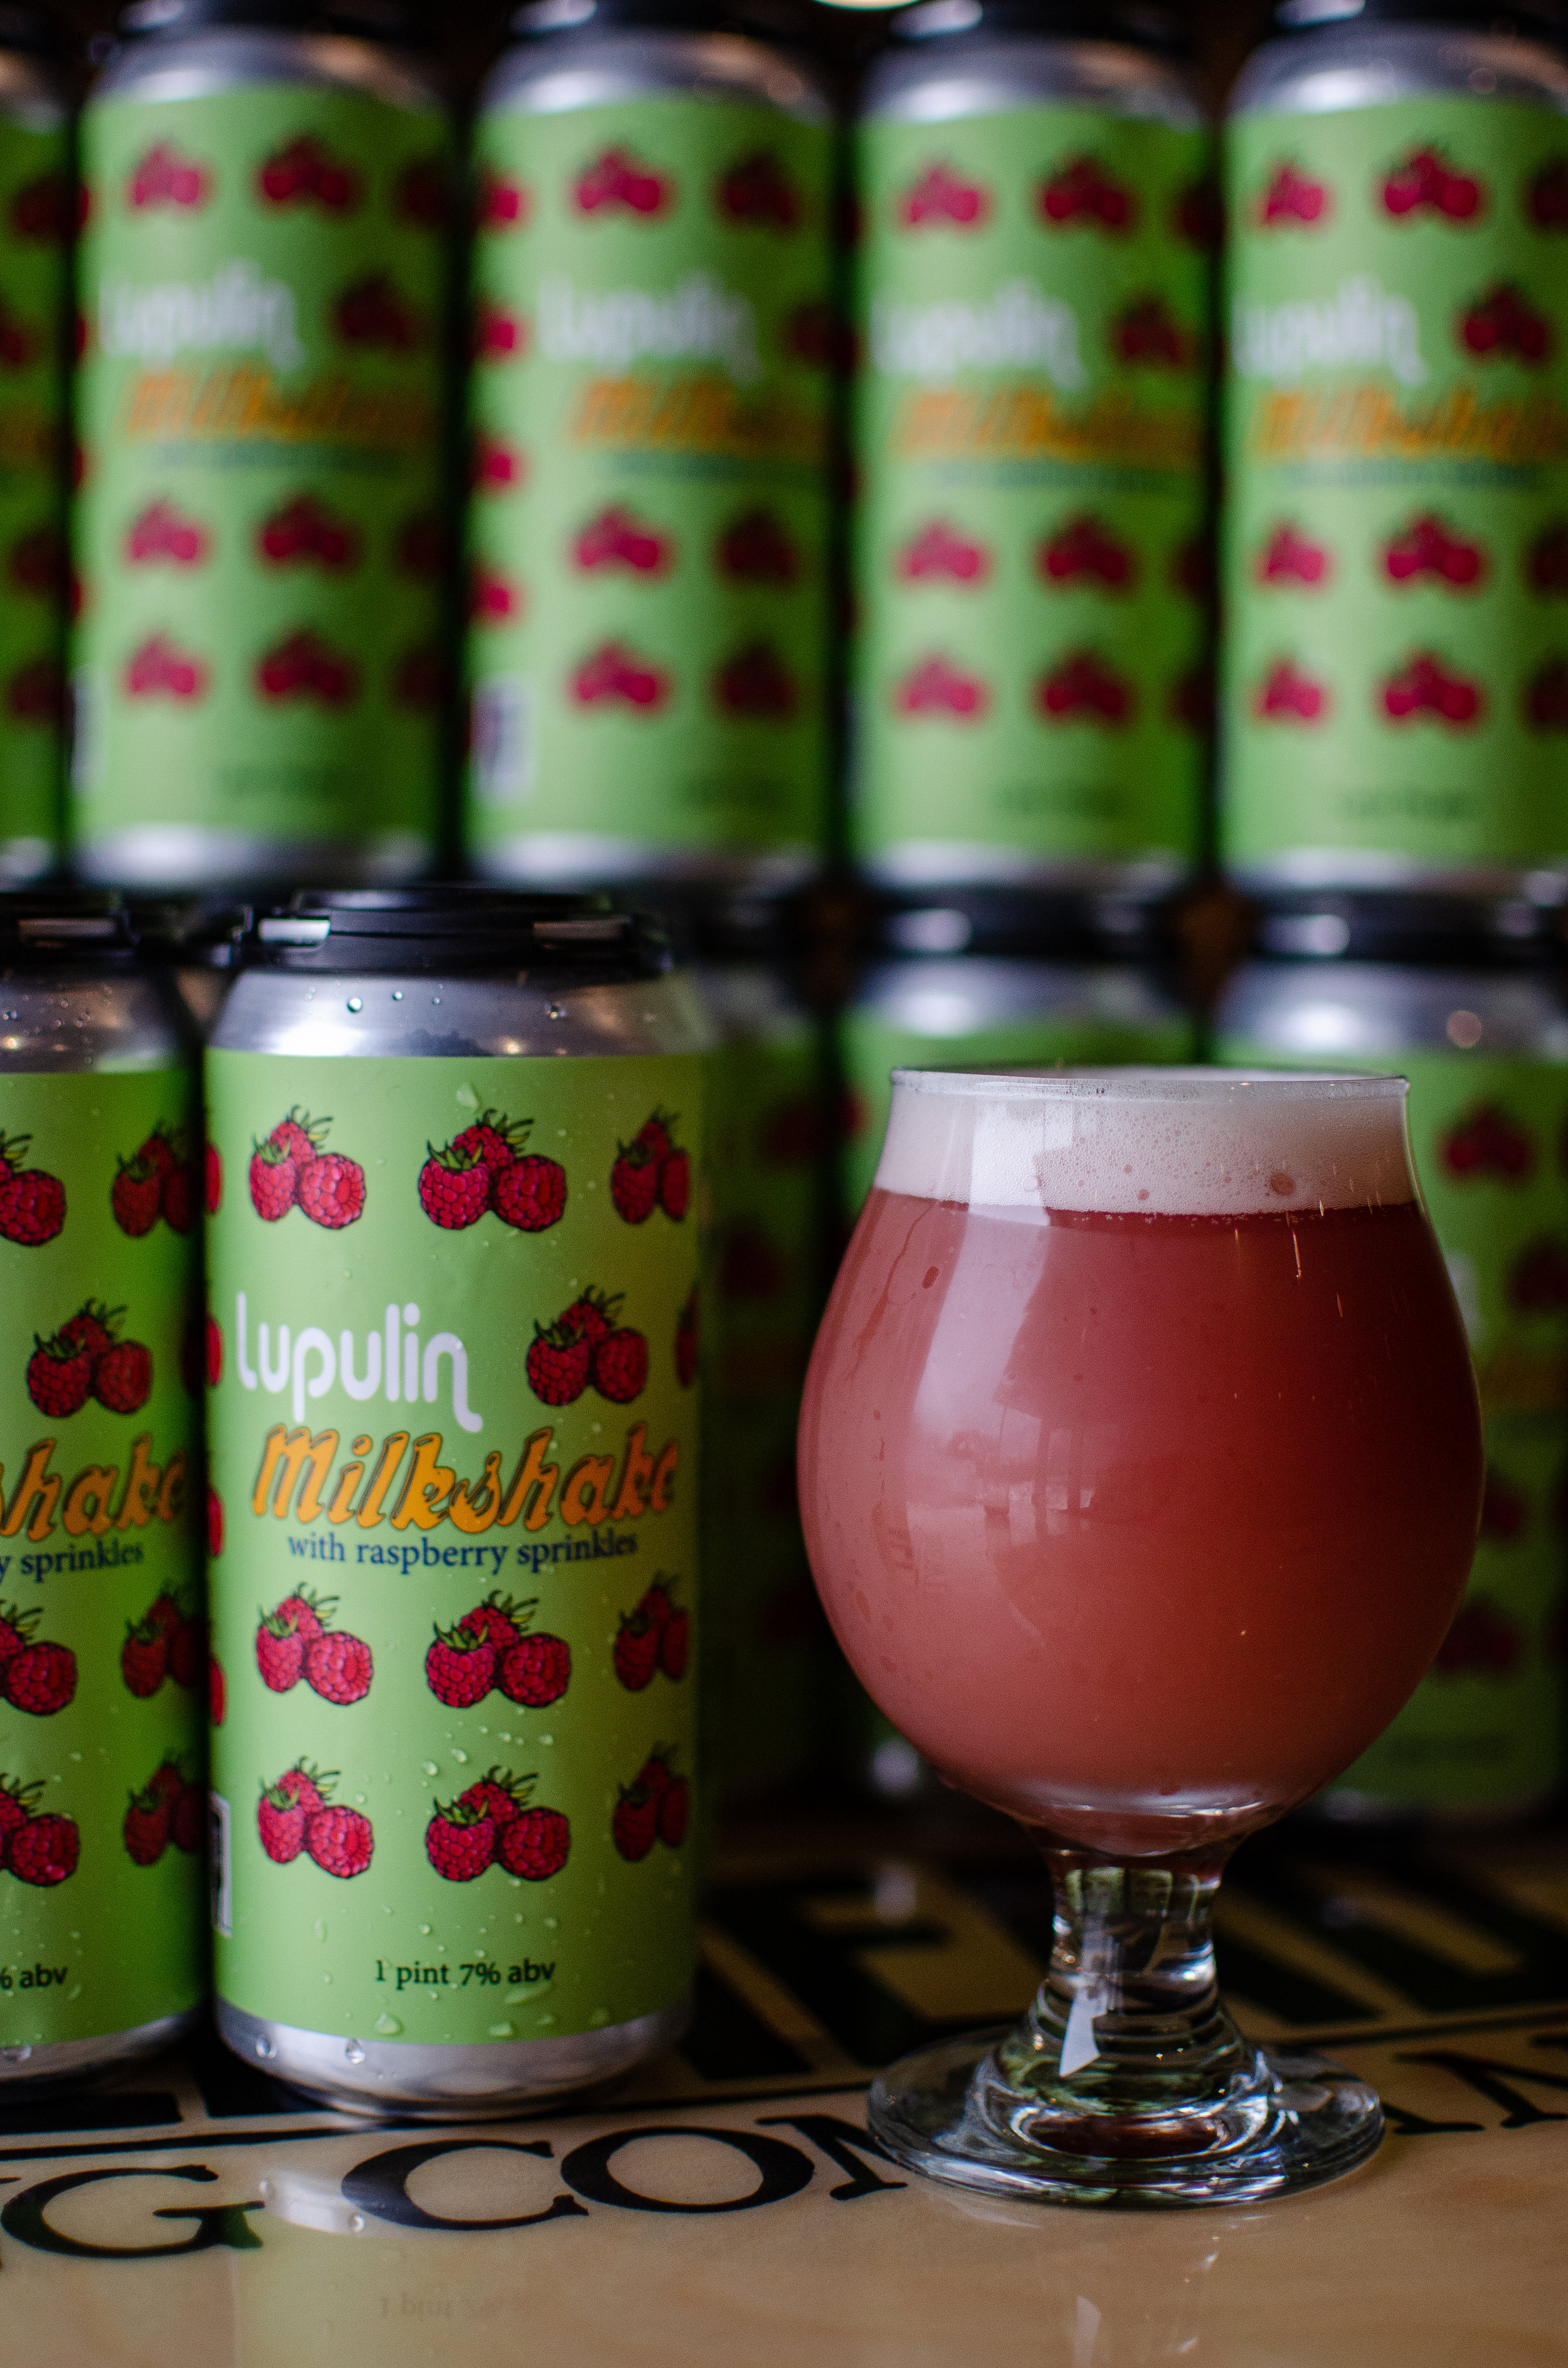 Lupulin Milkshake with Raspberry Sprinkles - A creamy, smooth and fruity IPA with raspberries, vanilla beans and lactose. El Dorado and Mosaic Hops.